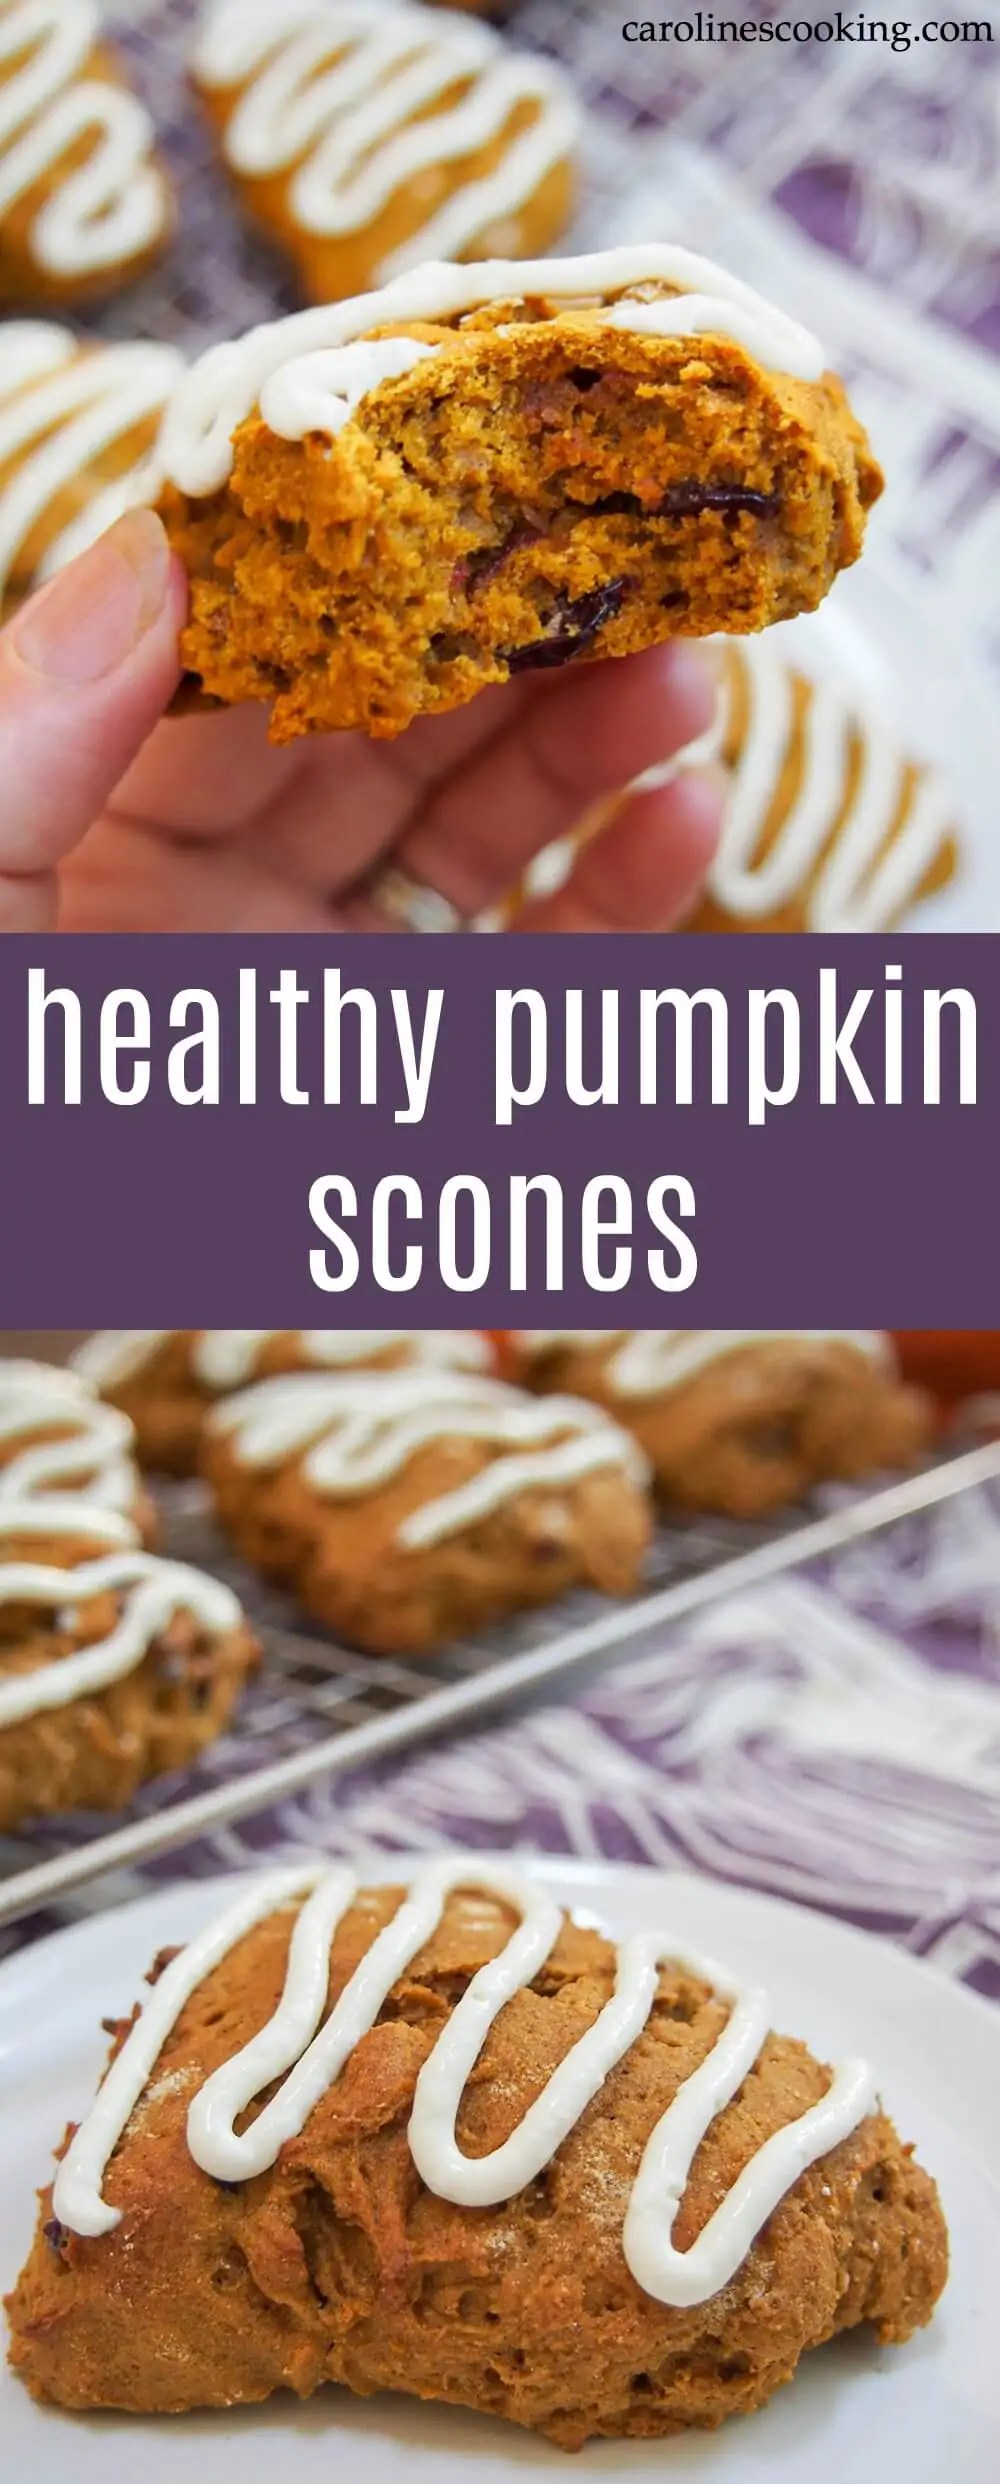 These healthy pumpkin scones are wonderfully moist, gently spiced and sweet but so much better for you than your average scone. How could you go wrong?! The warm spices are a delicious taste of fall. A great easy baked treat. #pumpkin #baking #scone